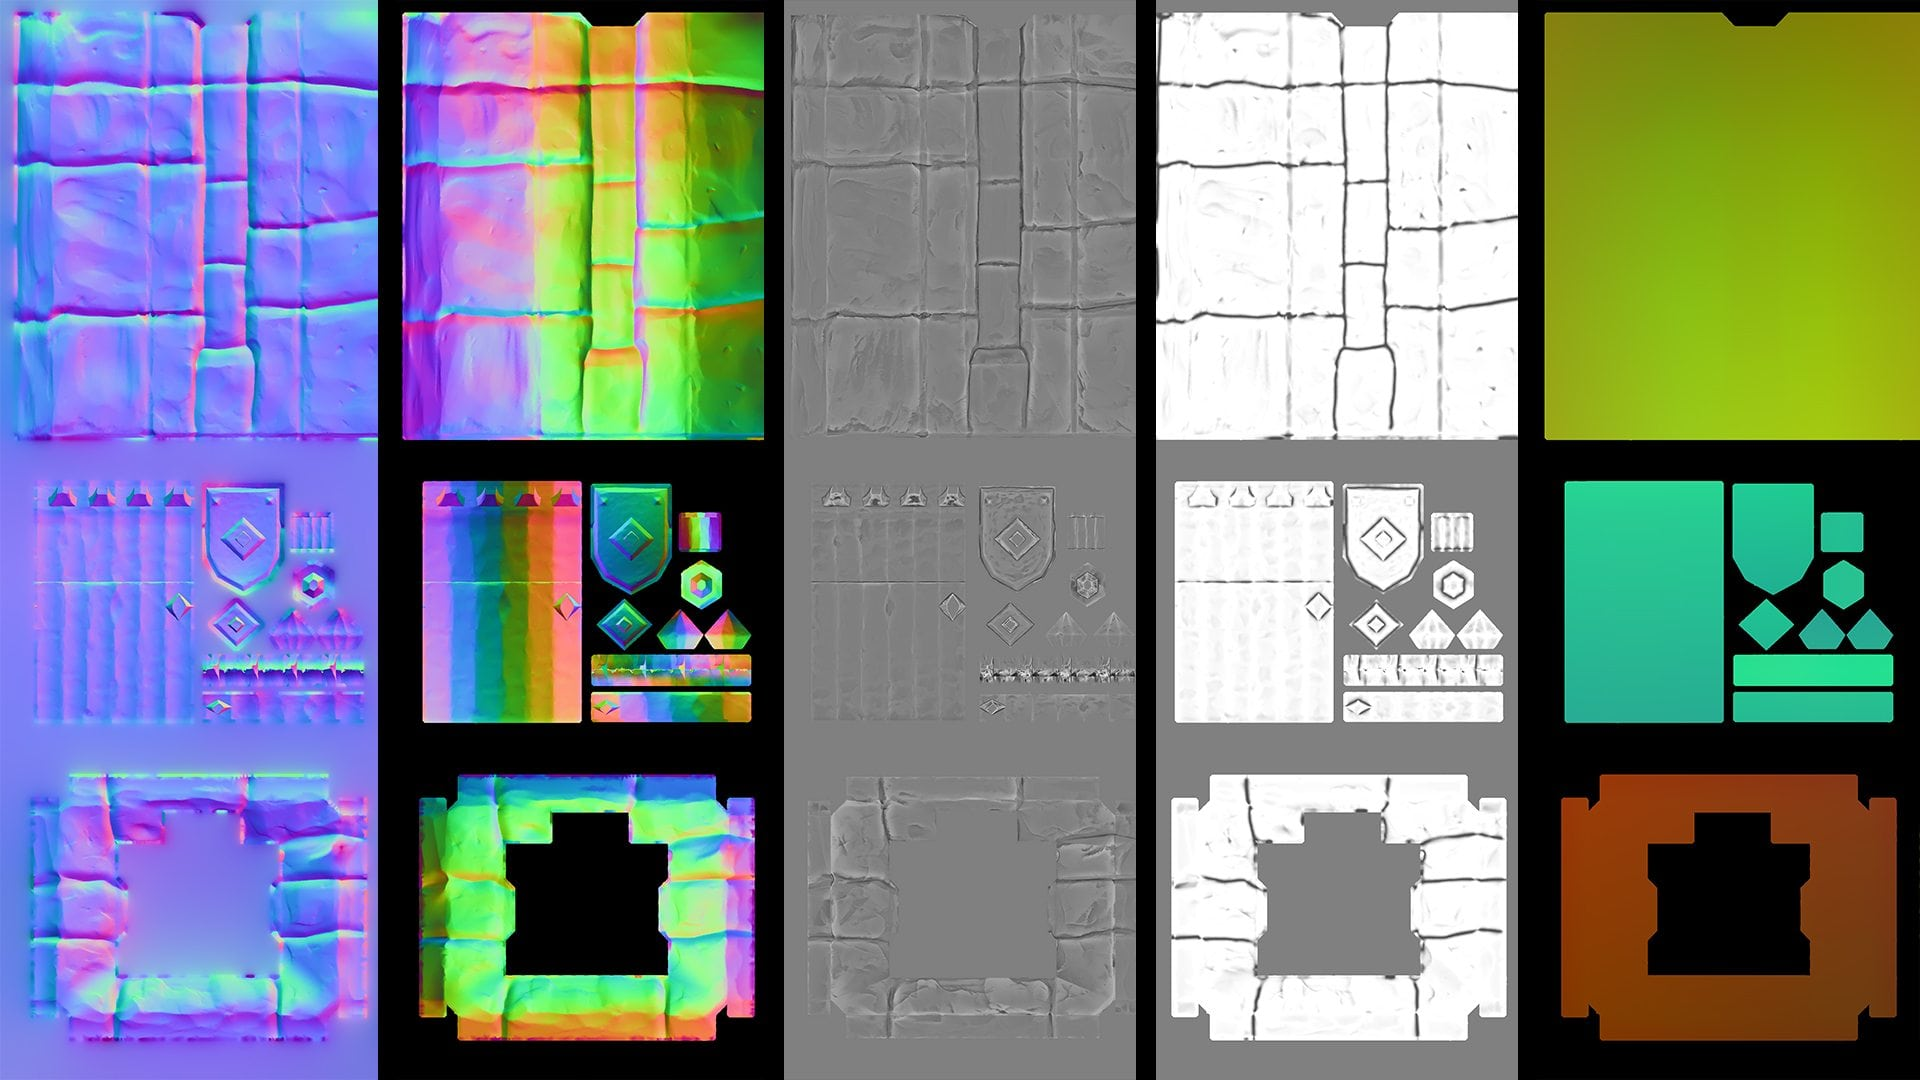 Image 09 - various baked maps; tangent space normal, object space normal, curvature, ambient occlusion and position gradient